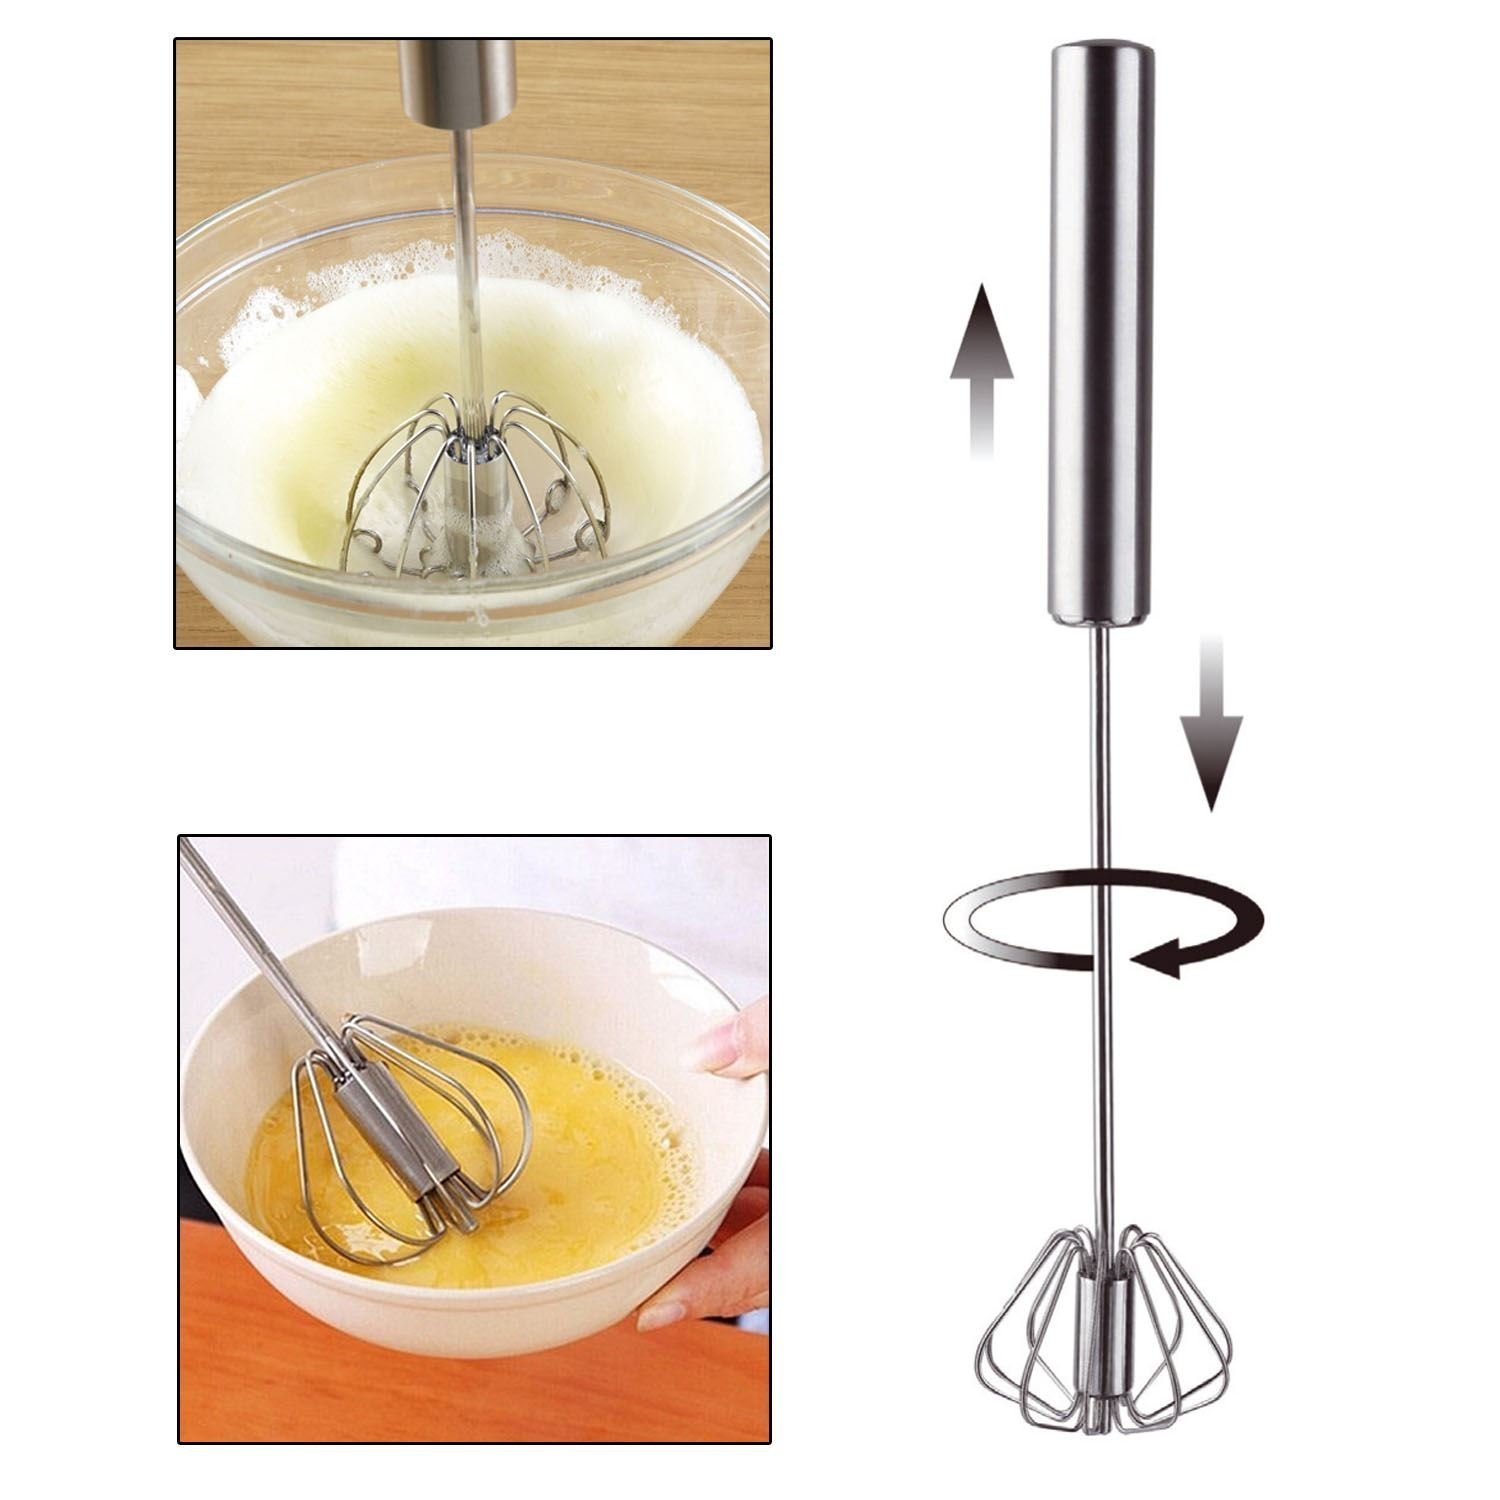 KCASA KC-EW089 Stainless Steel Semi-automatic Whisk Egg Beater Mixer Stirrer Foamer Kitchen Tools